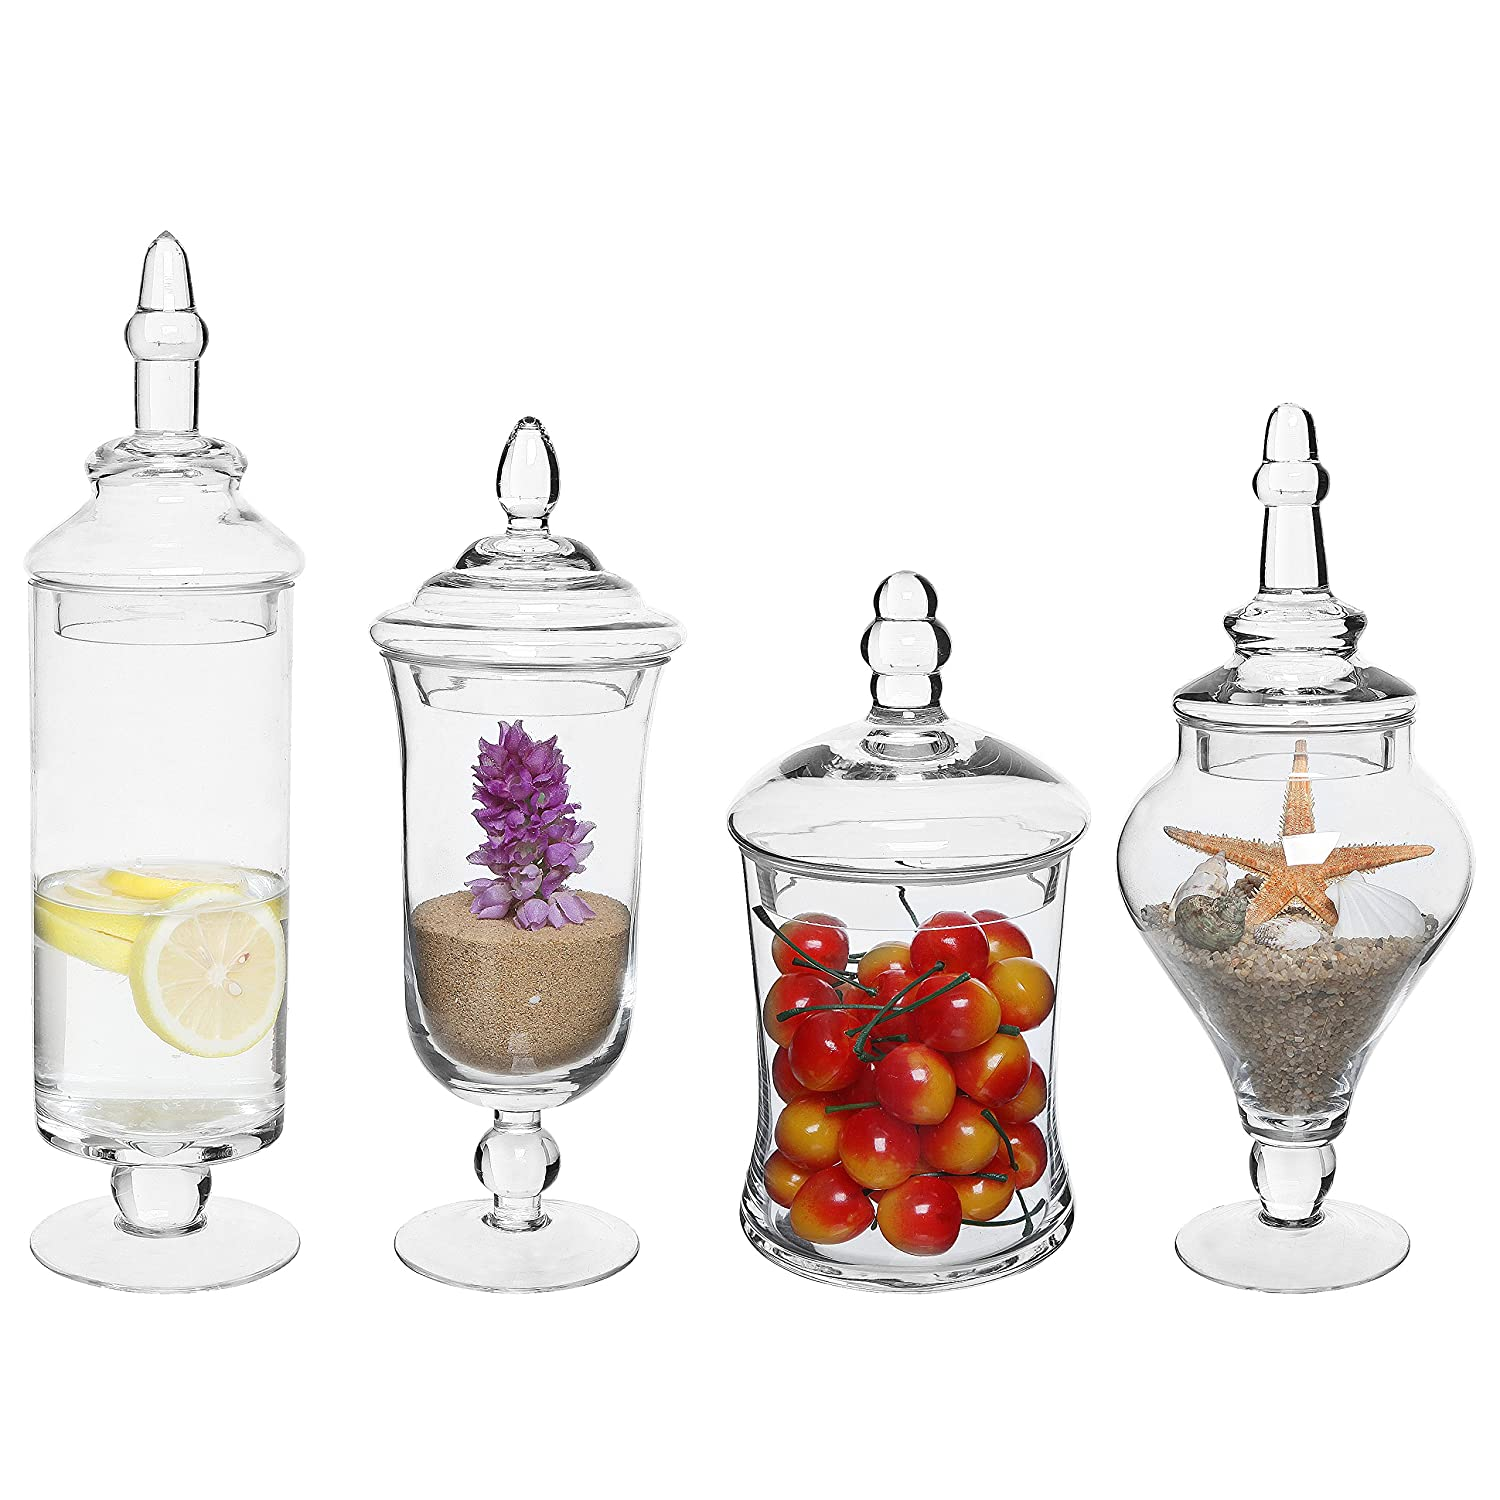 Apothecary Wedding Serving Canisters Decorative Image 1